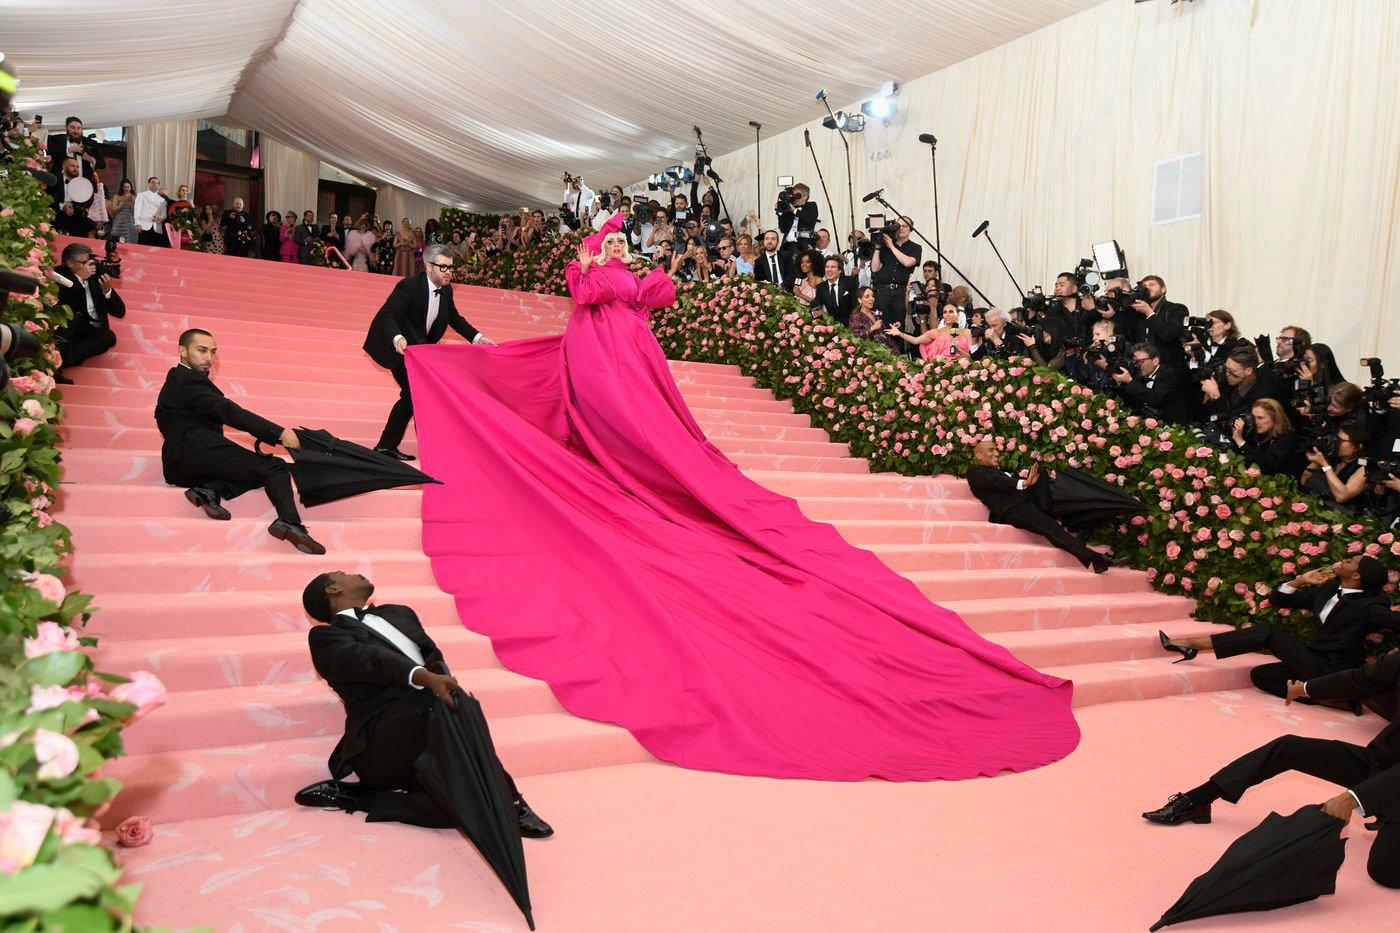 Gaga who lives and breathes camp obviously went big. She had 4 Brandon Maxwell outfits for the carpet but this was by far her best. Her entourage hit their marks perfectly.